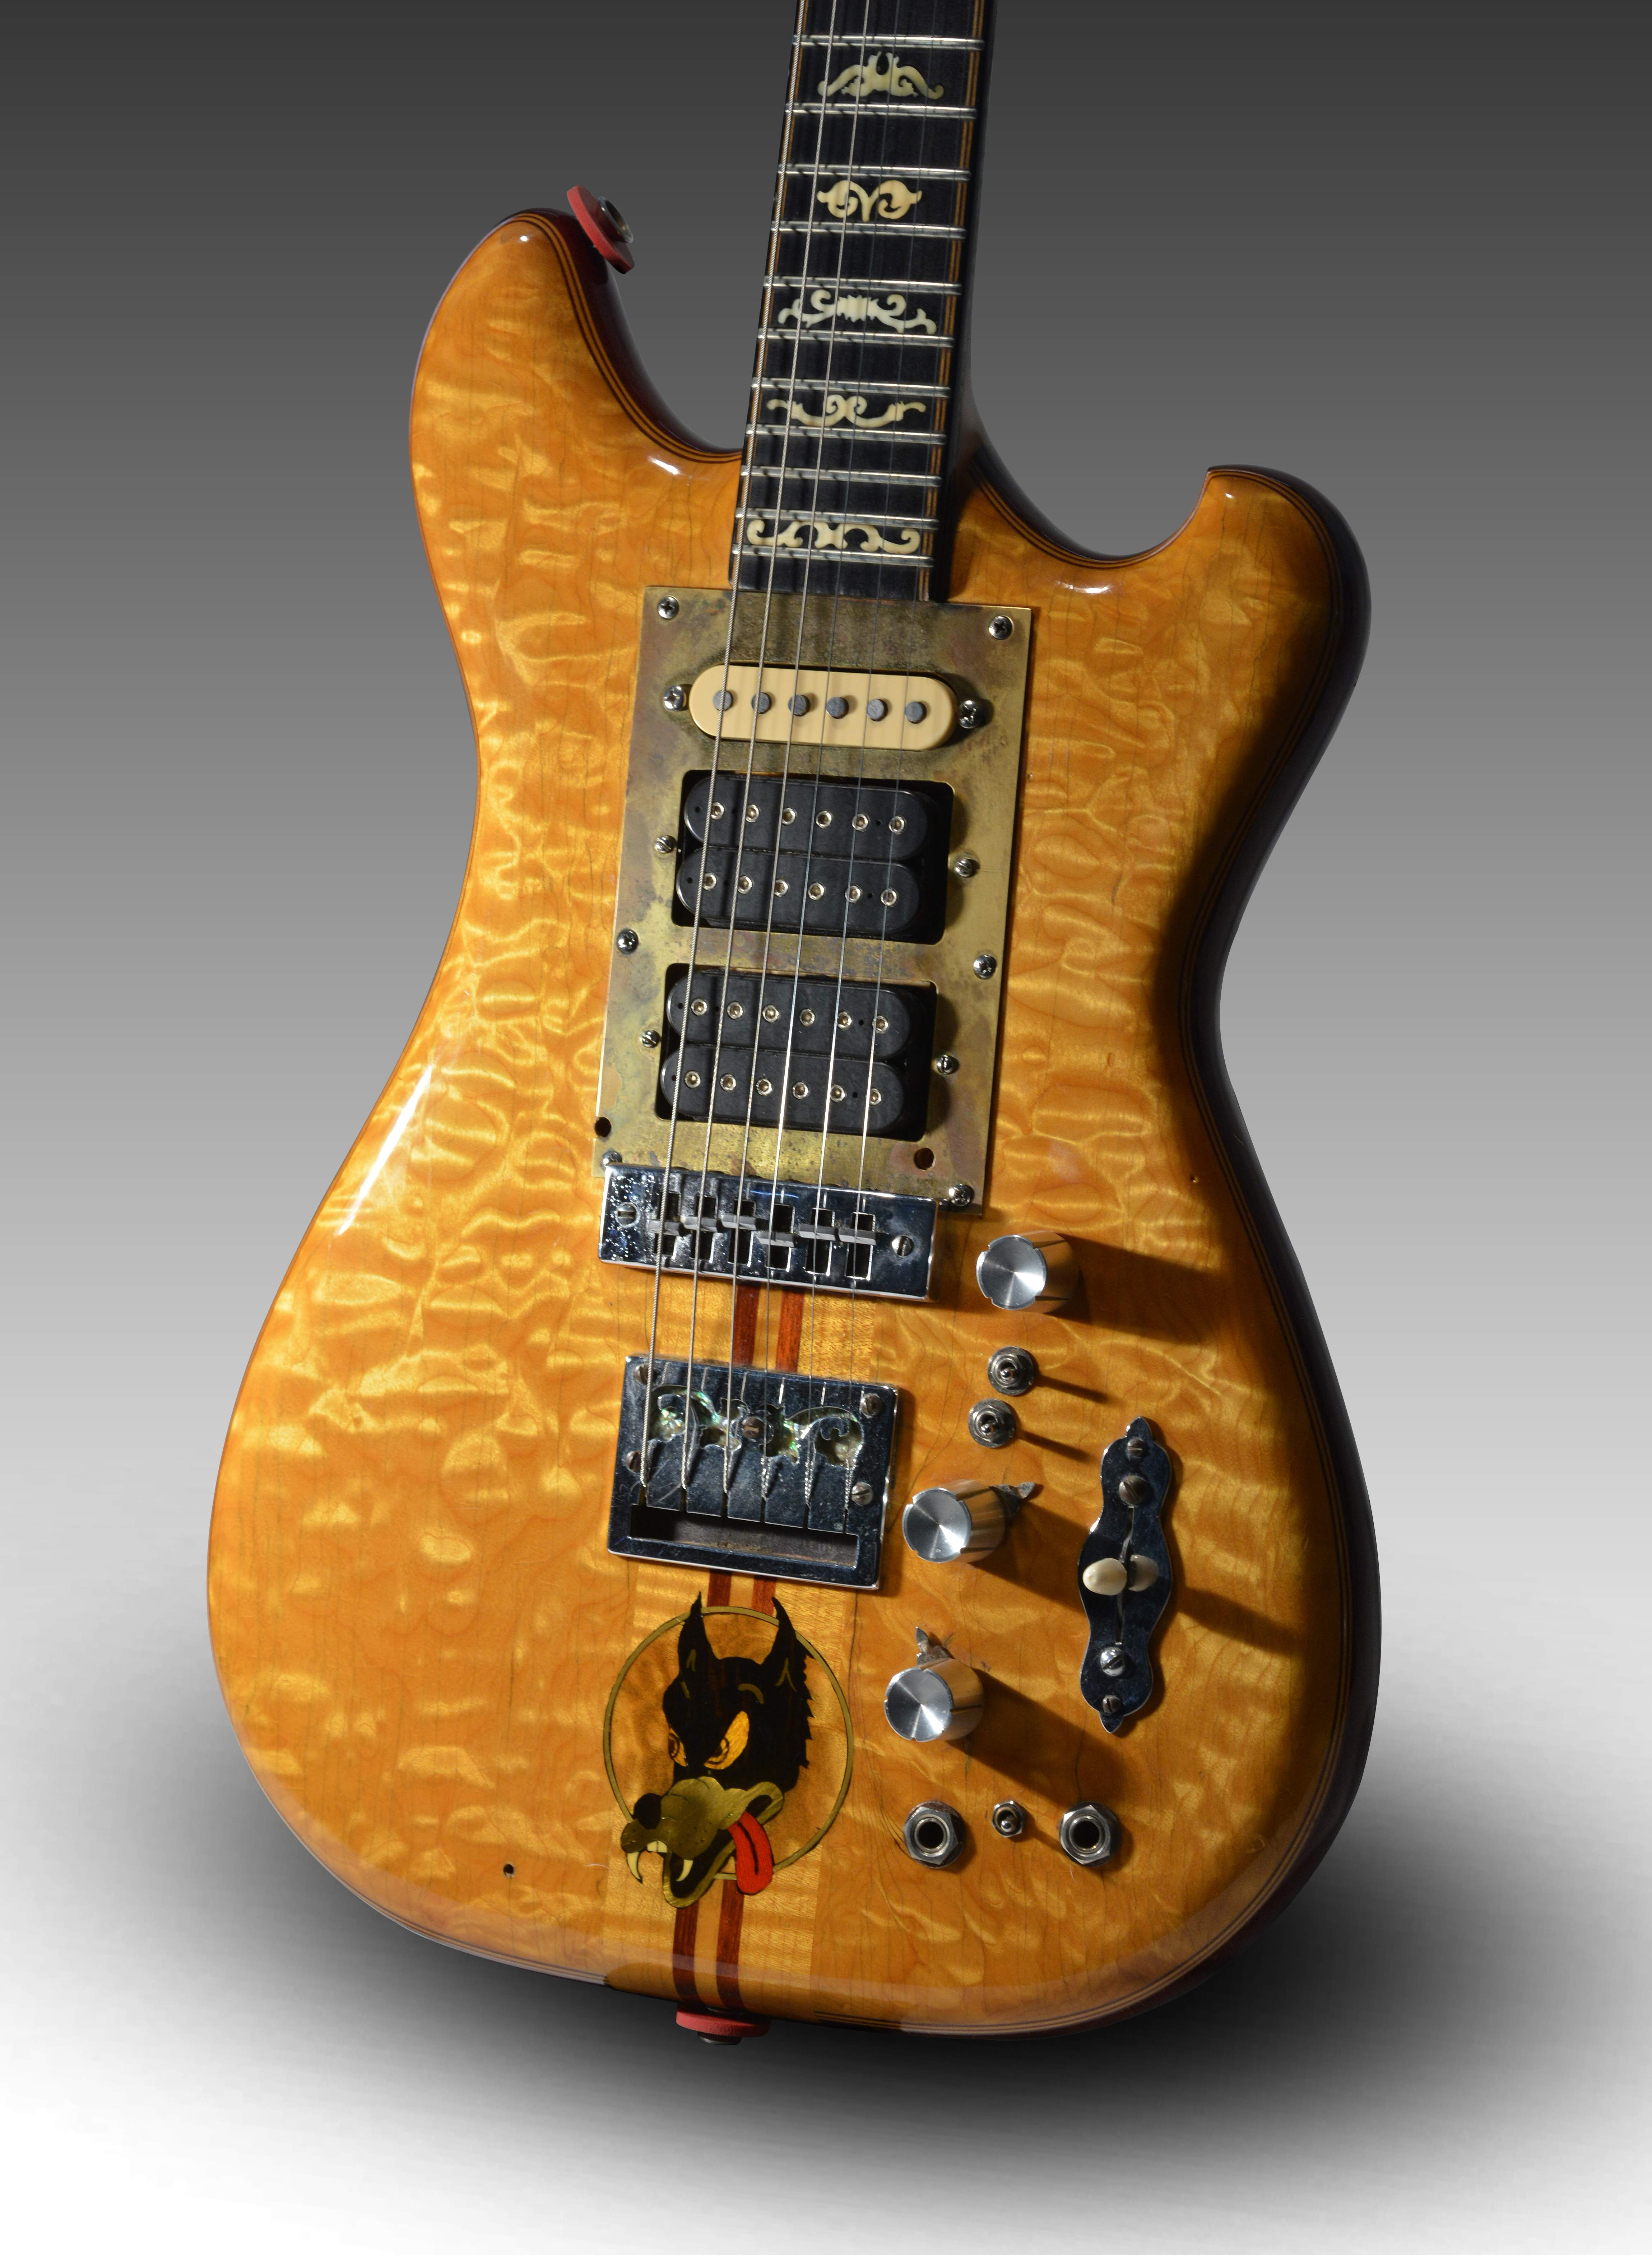 garcia s wolf guitar earns 3 5 million for southern poverty law center. Black Bedroom Furniture Sets. Home Design Ideas